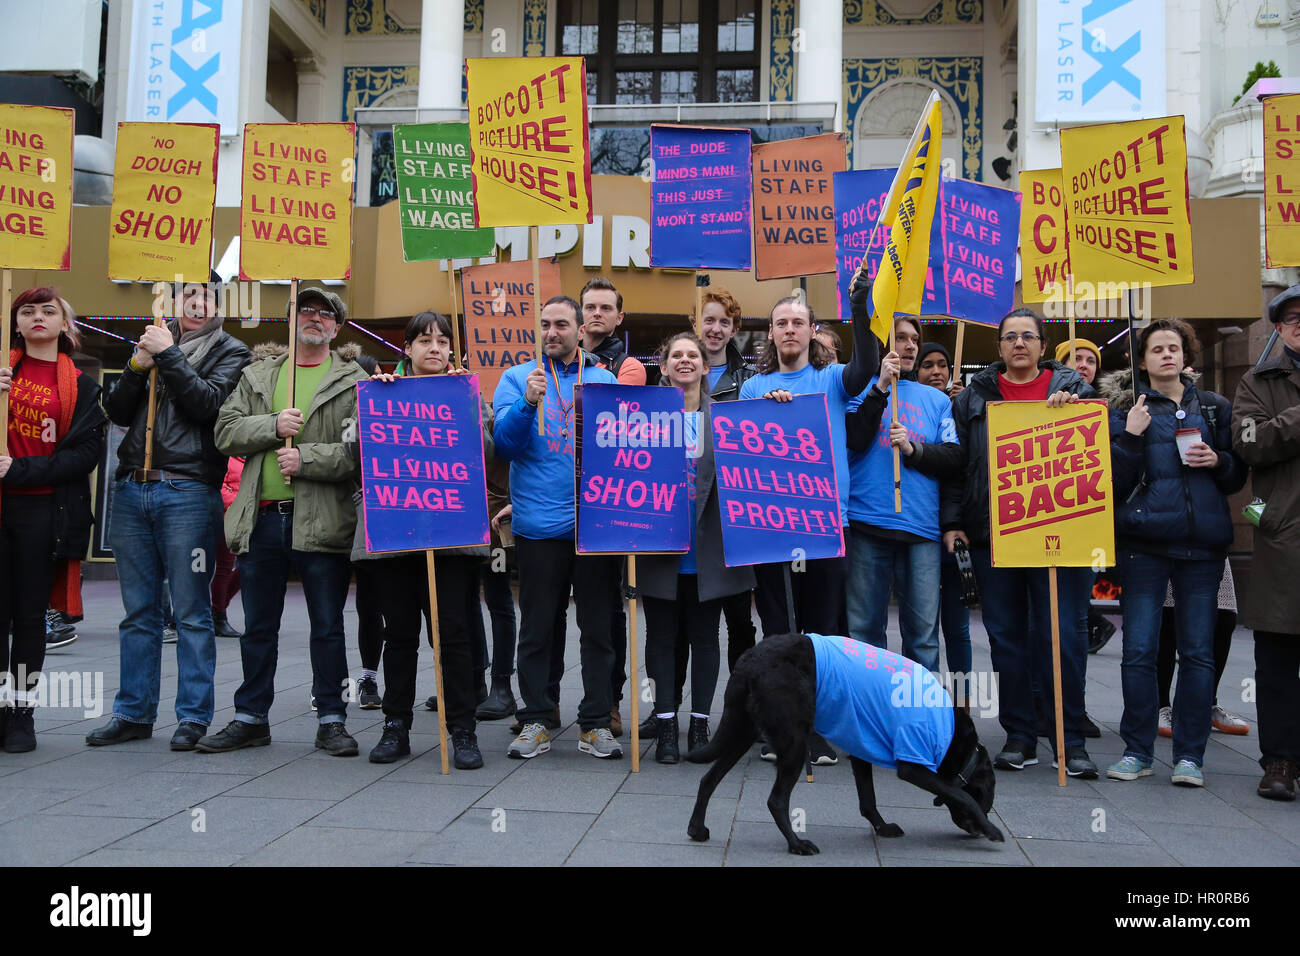 Empire Cinema, Leicester Square, London. UK 25 Feb 2017. Empire Cinema Picturehouse workers walk out on strike and Stock Photo